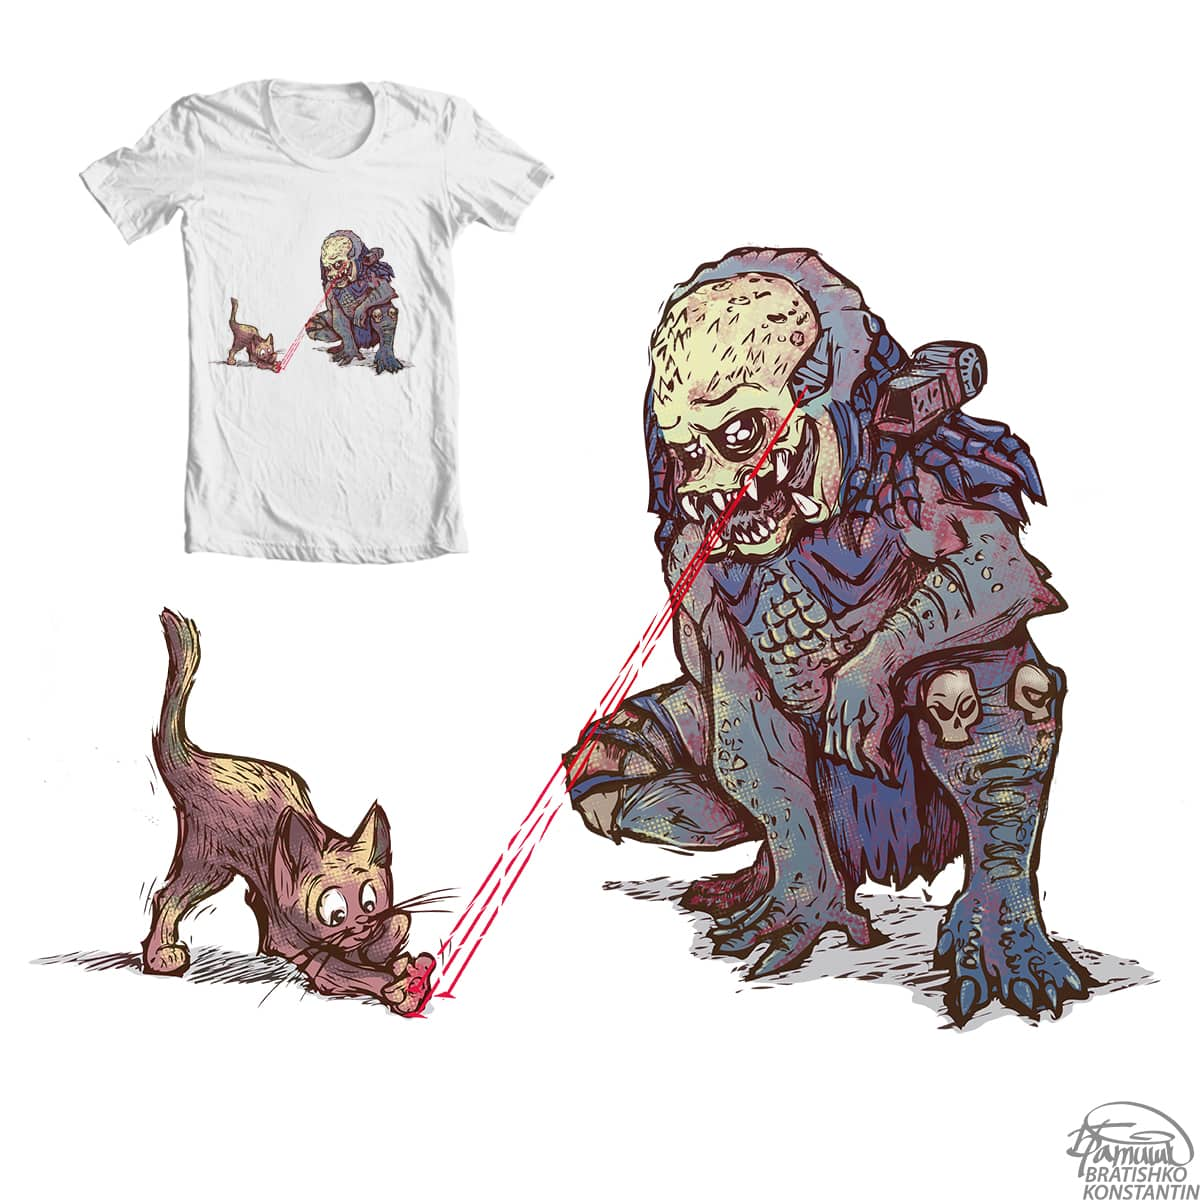 lazer games by KONSTANTIN BRATISHKO on Threadless